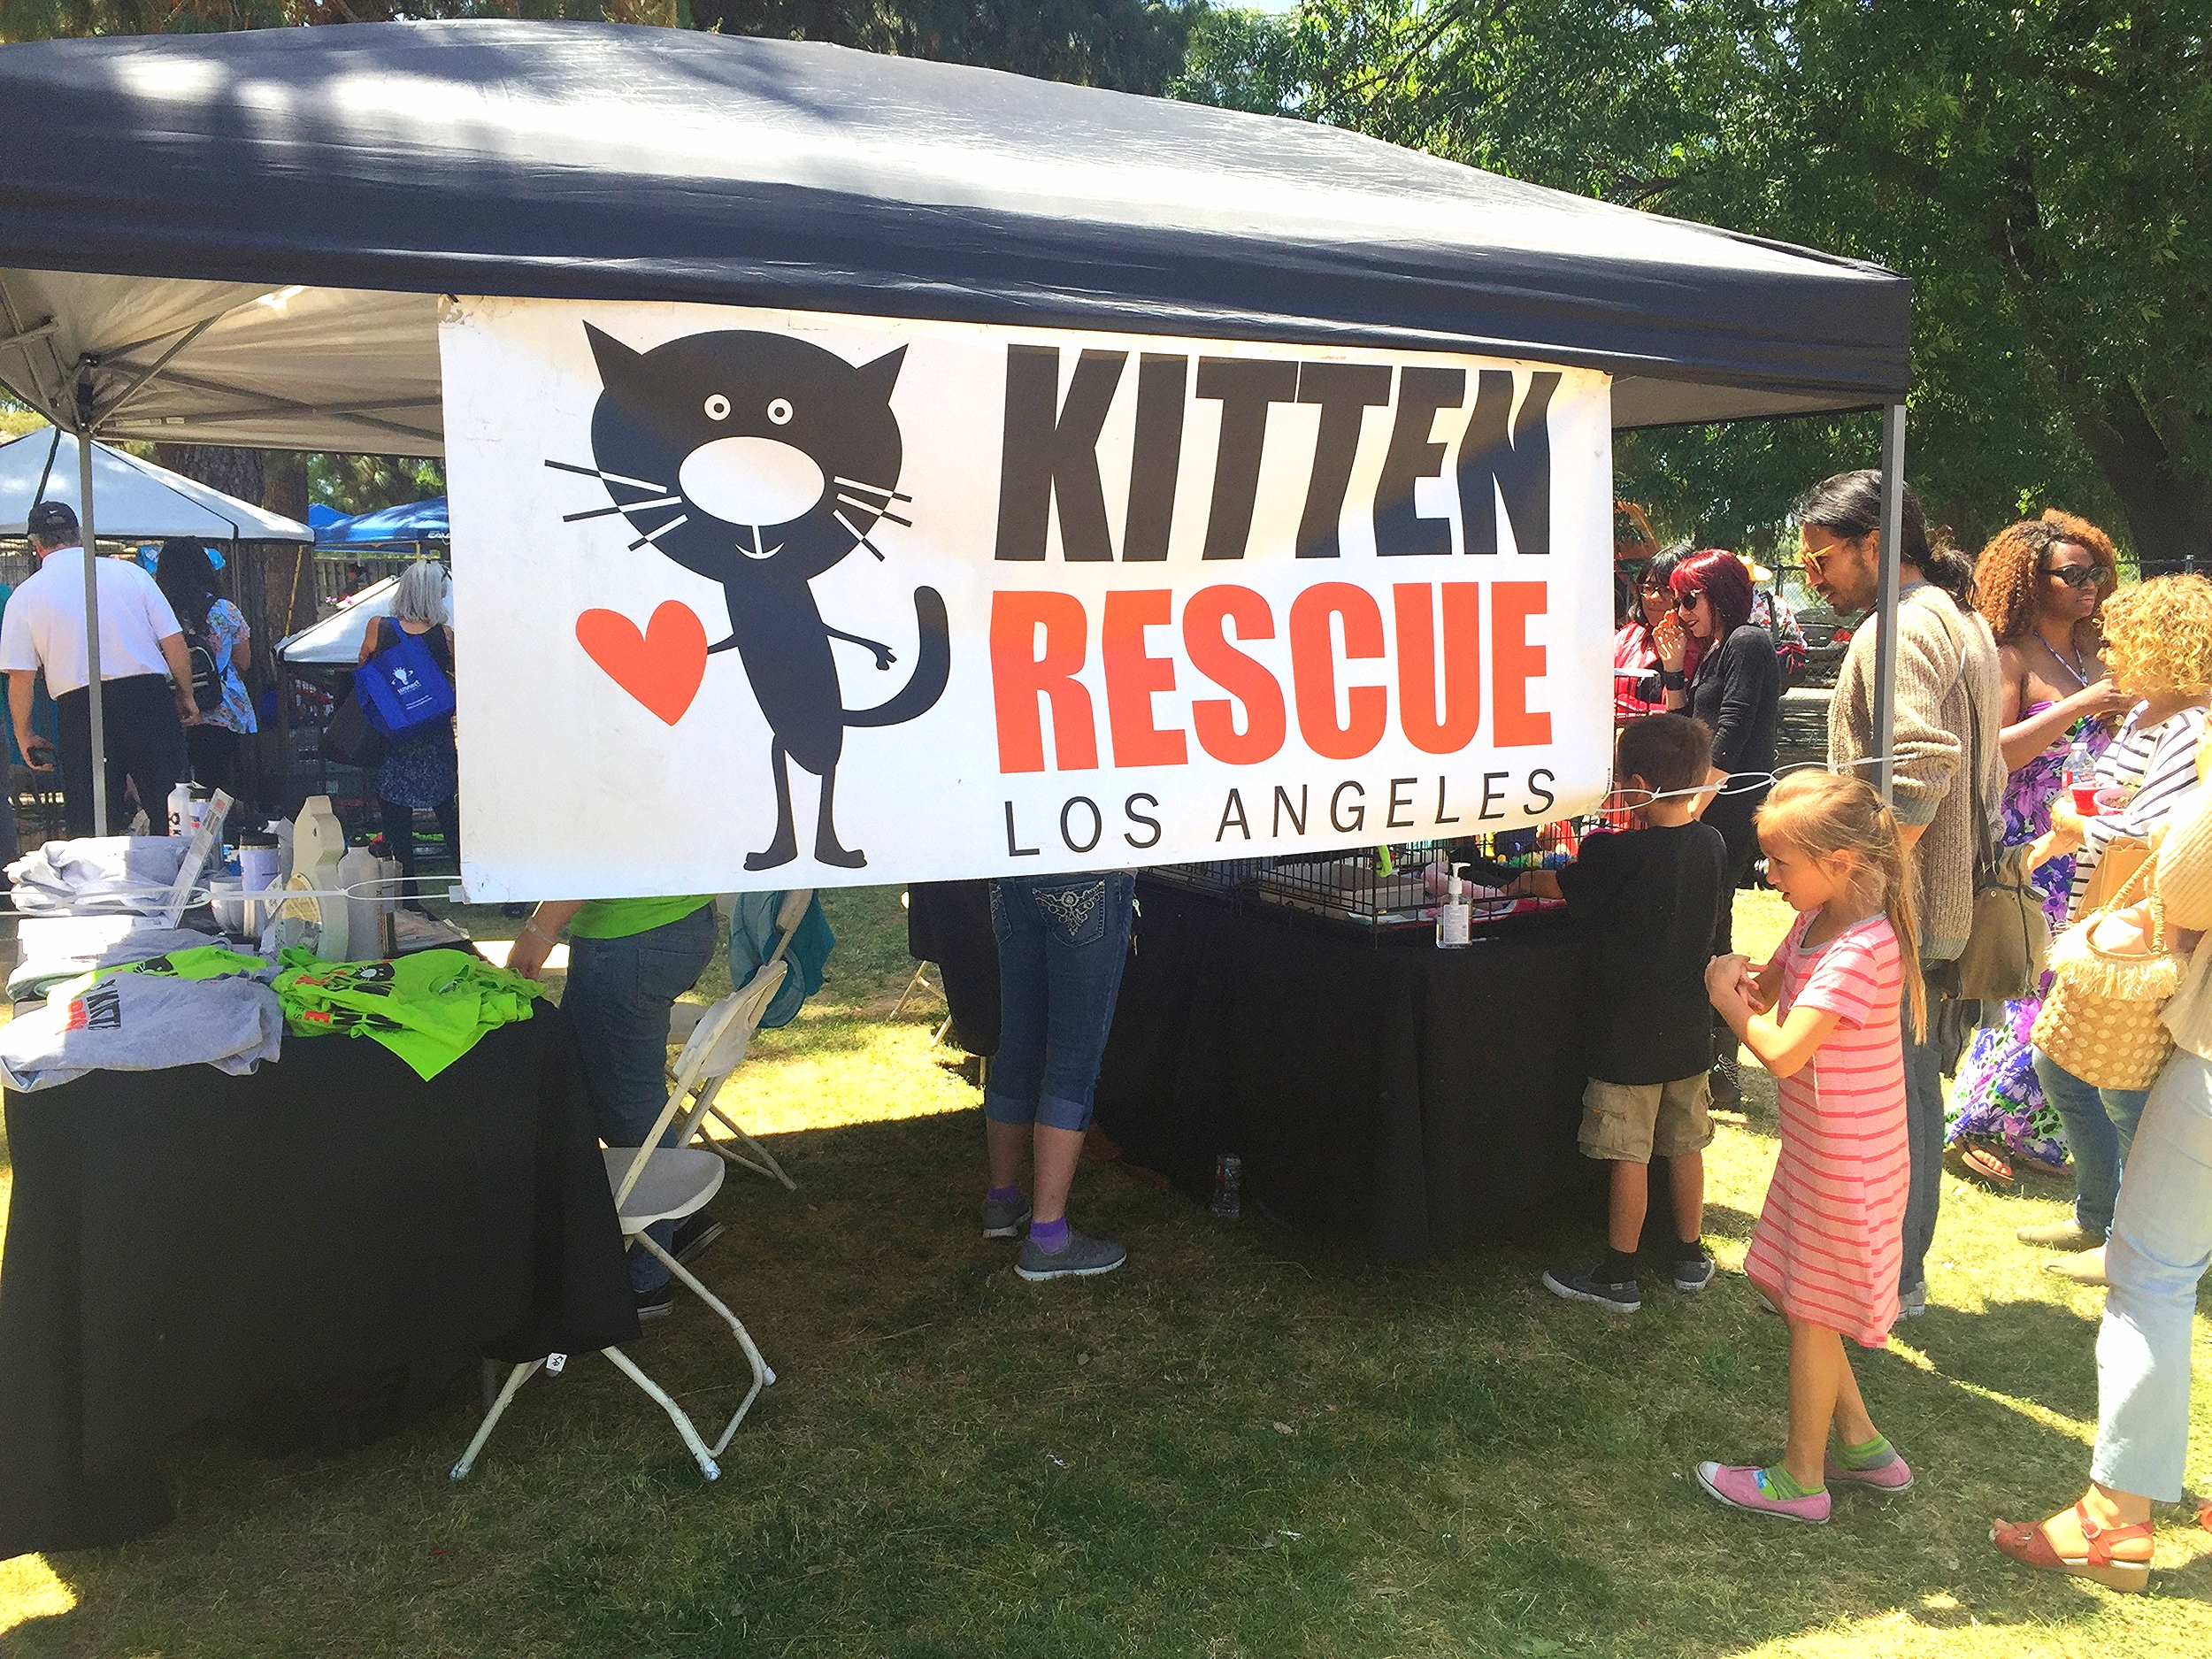 Kitten Rescue is a volunteer-run non-profit organization in Los Angeles